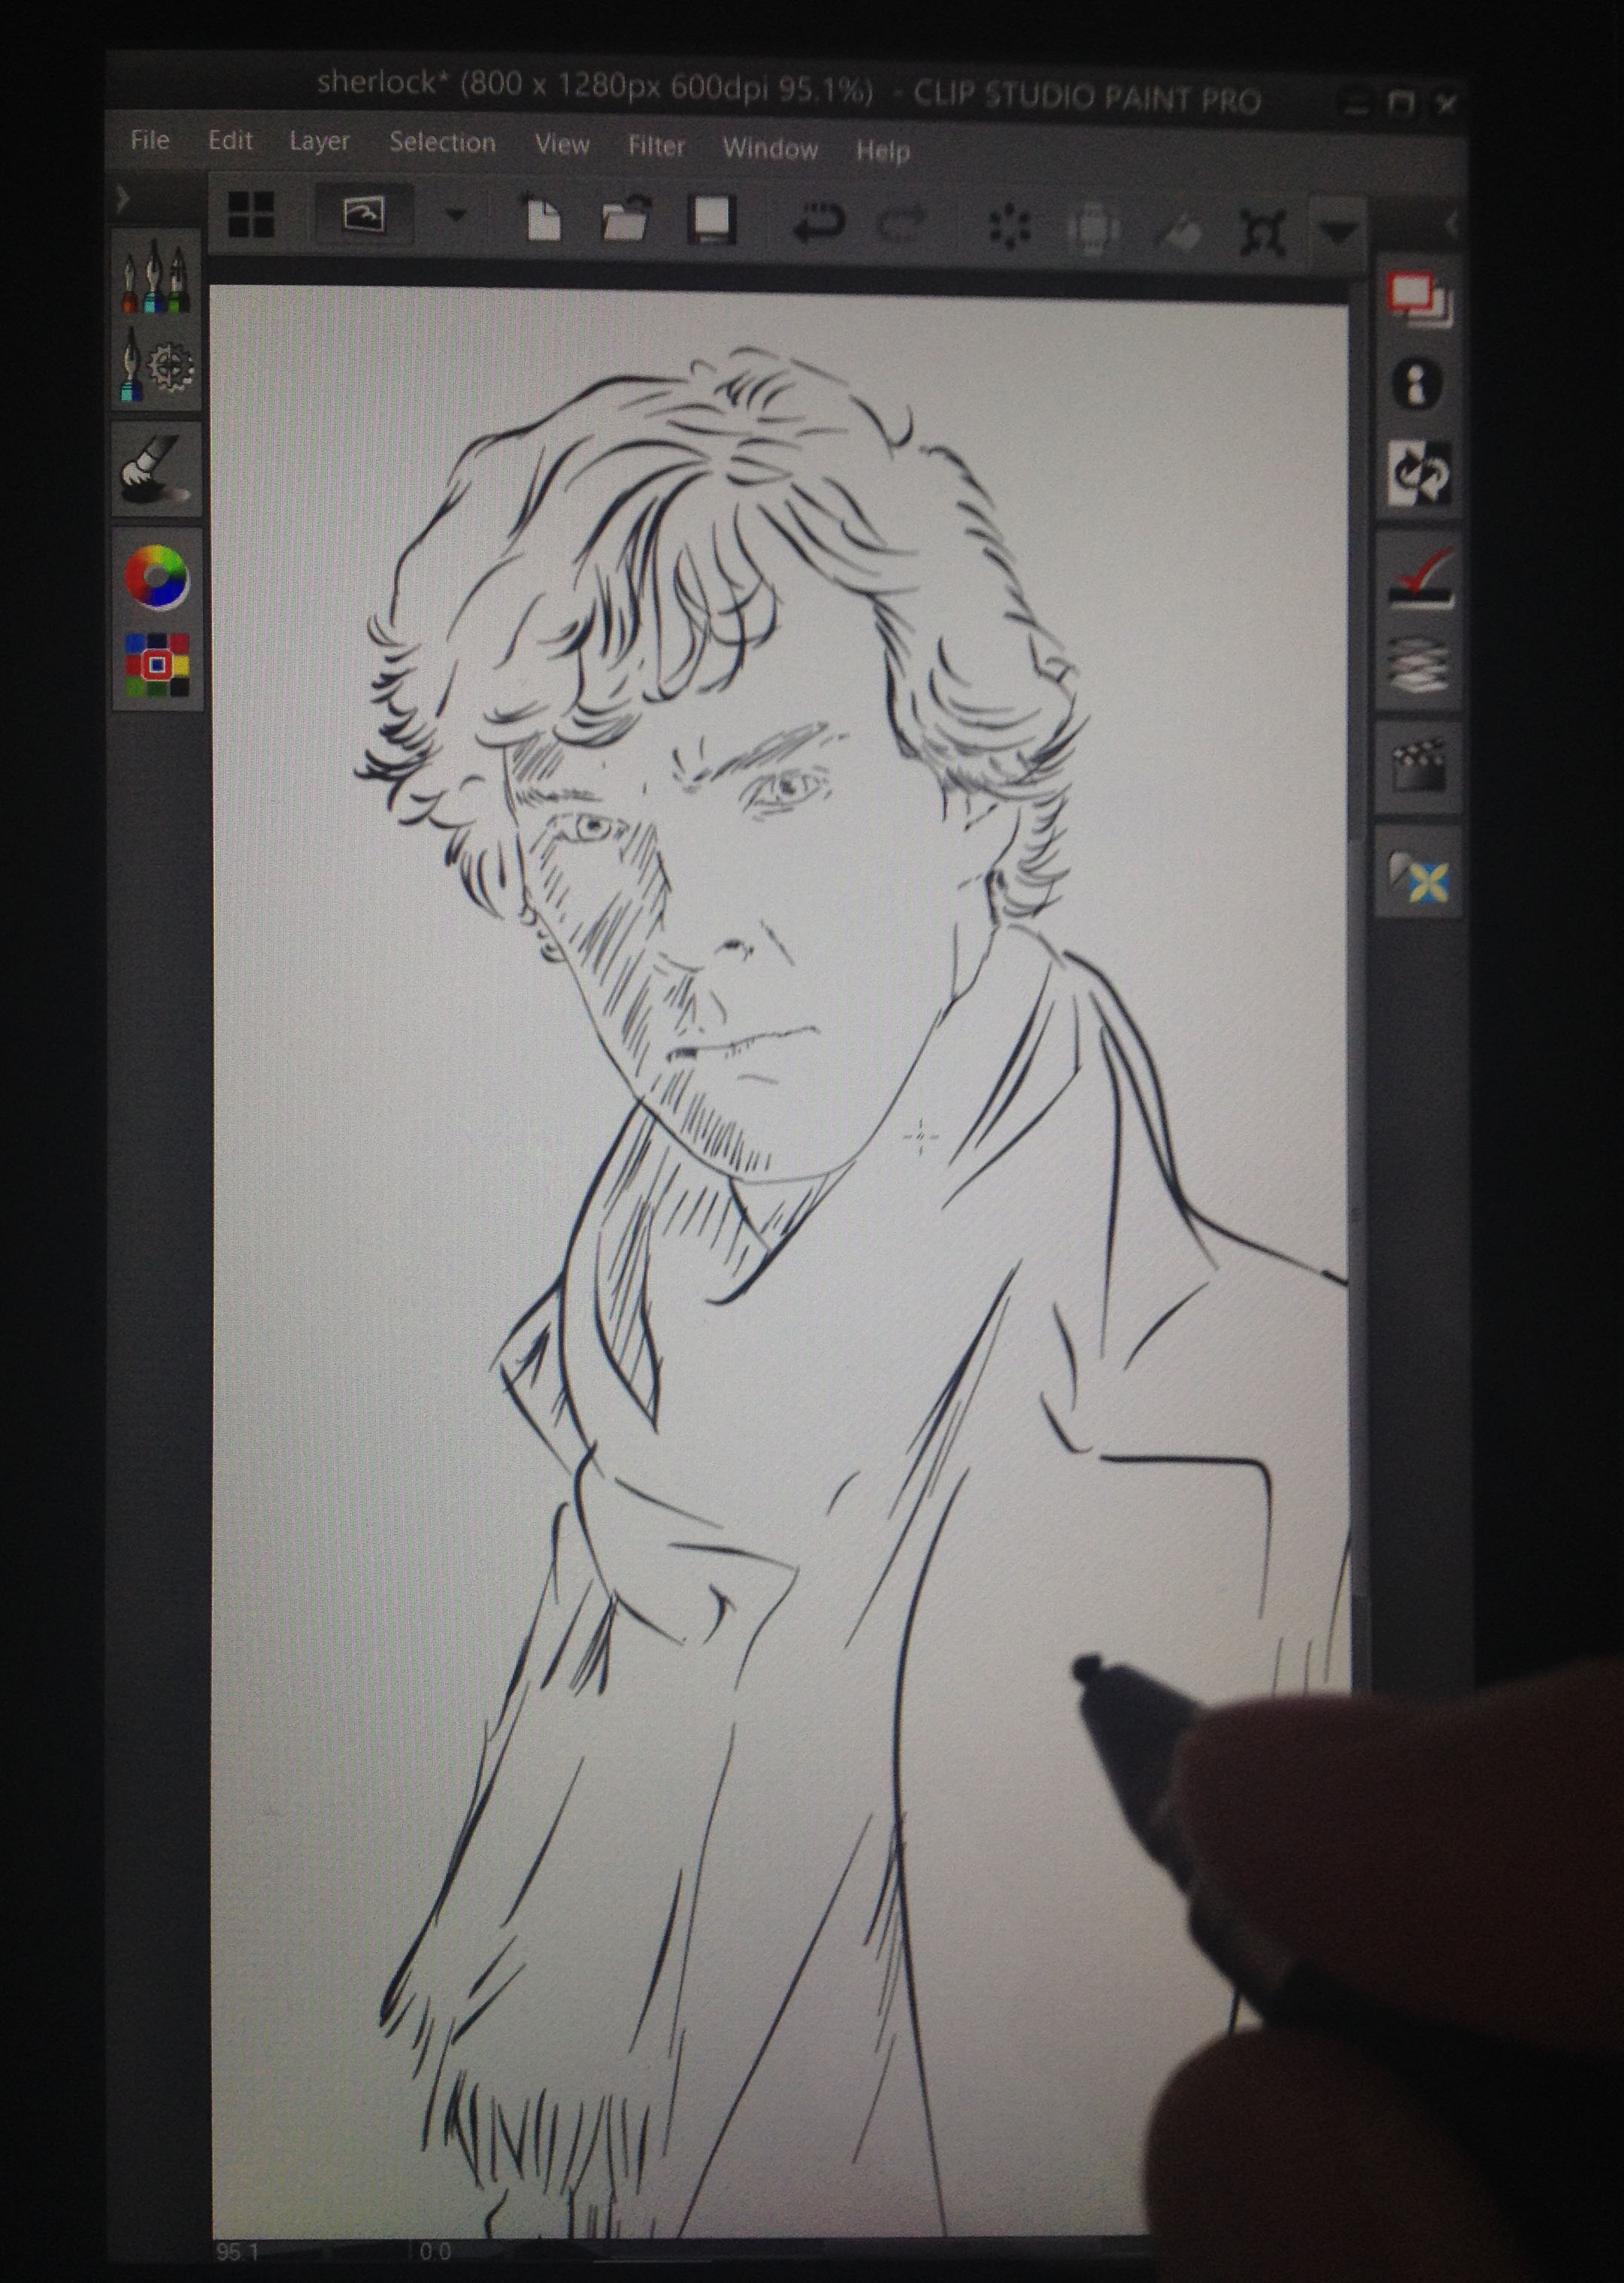 Five minute    @ Sketch_Dailies    #Sherlock. Working at 800x1280, 600 dpi; finding it difficult to get fine control.